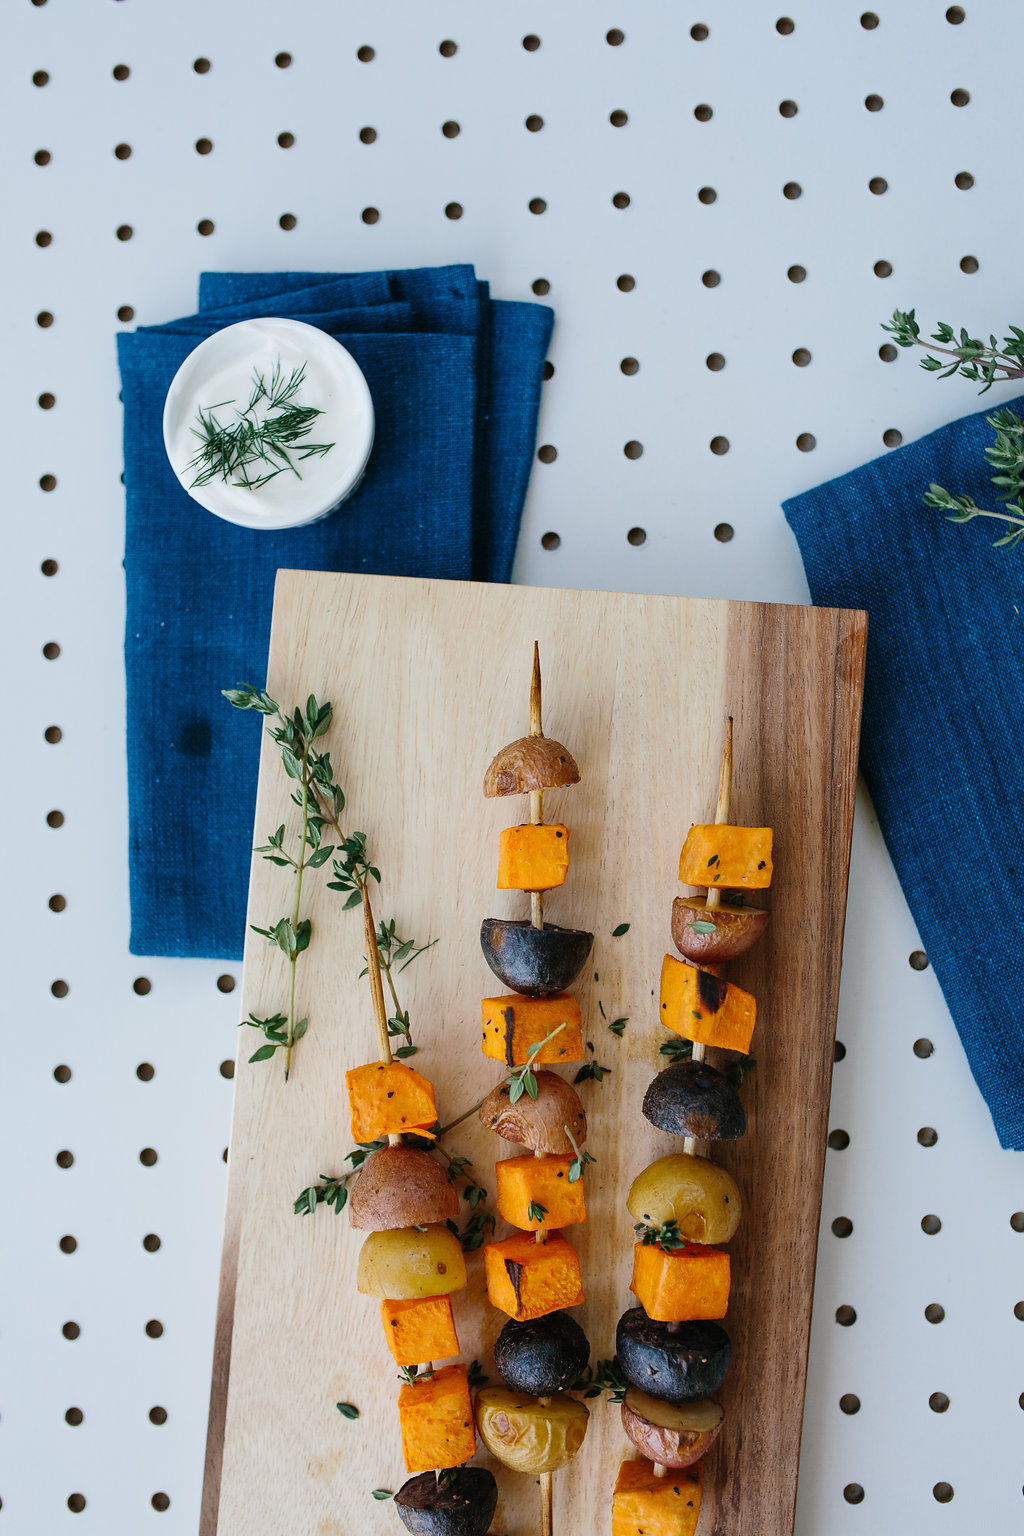 Three vegetable skewers on a wooden chopping board